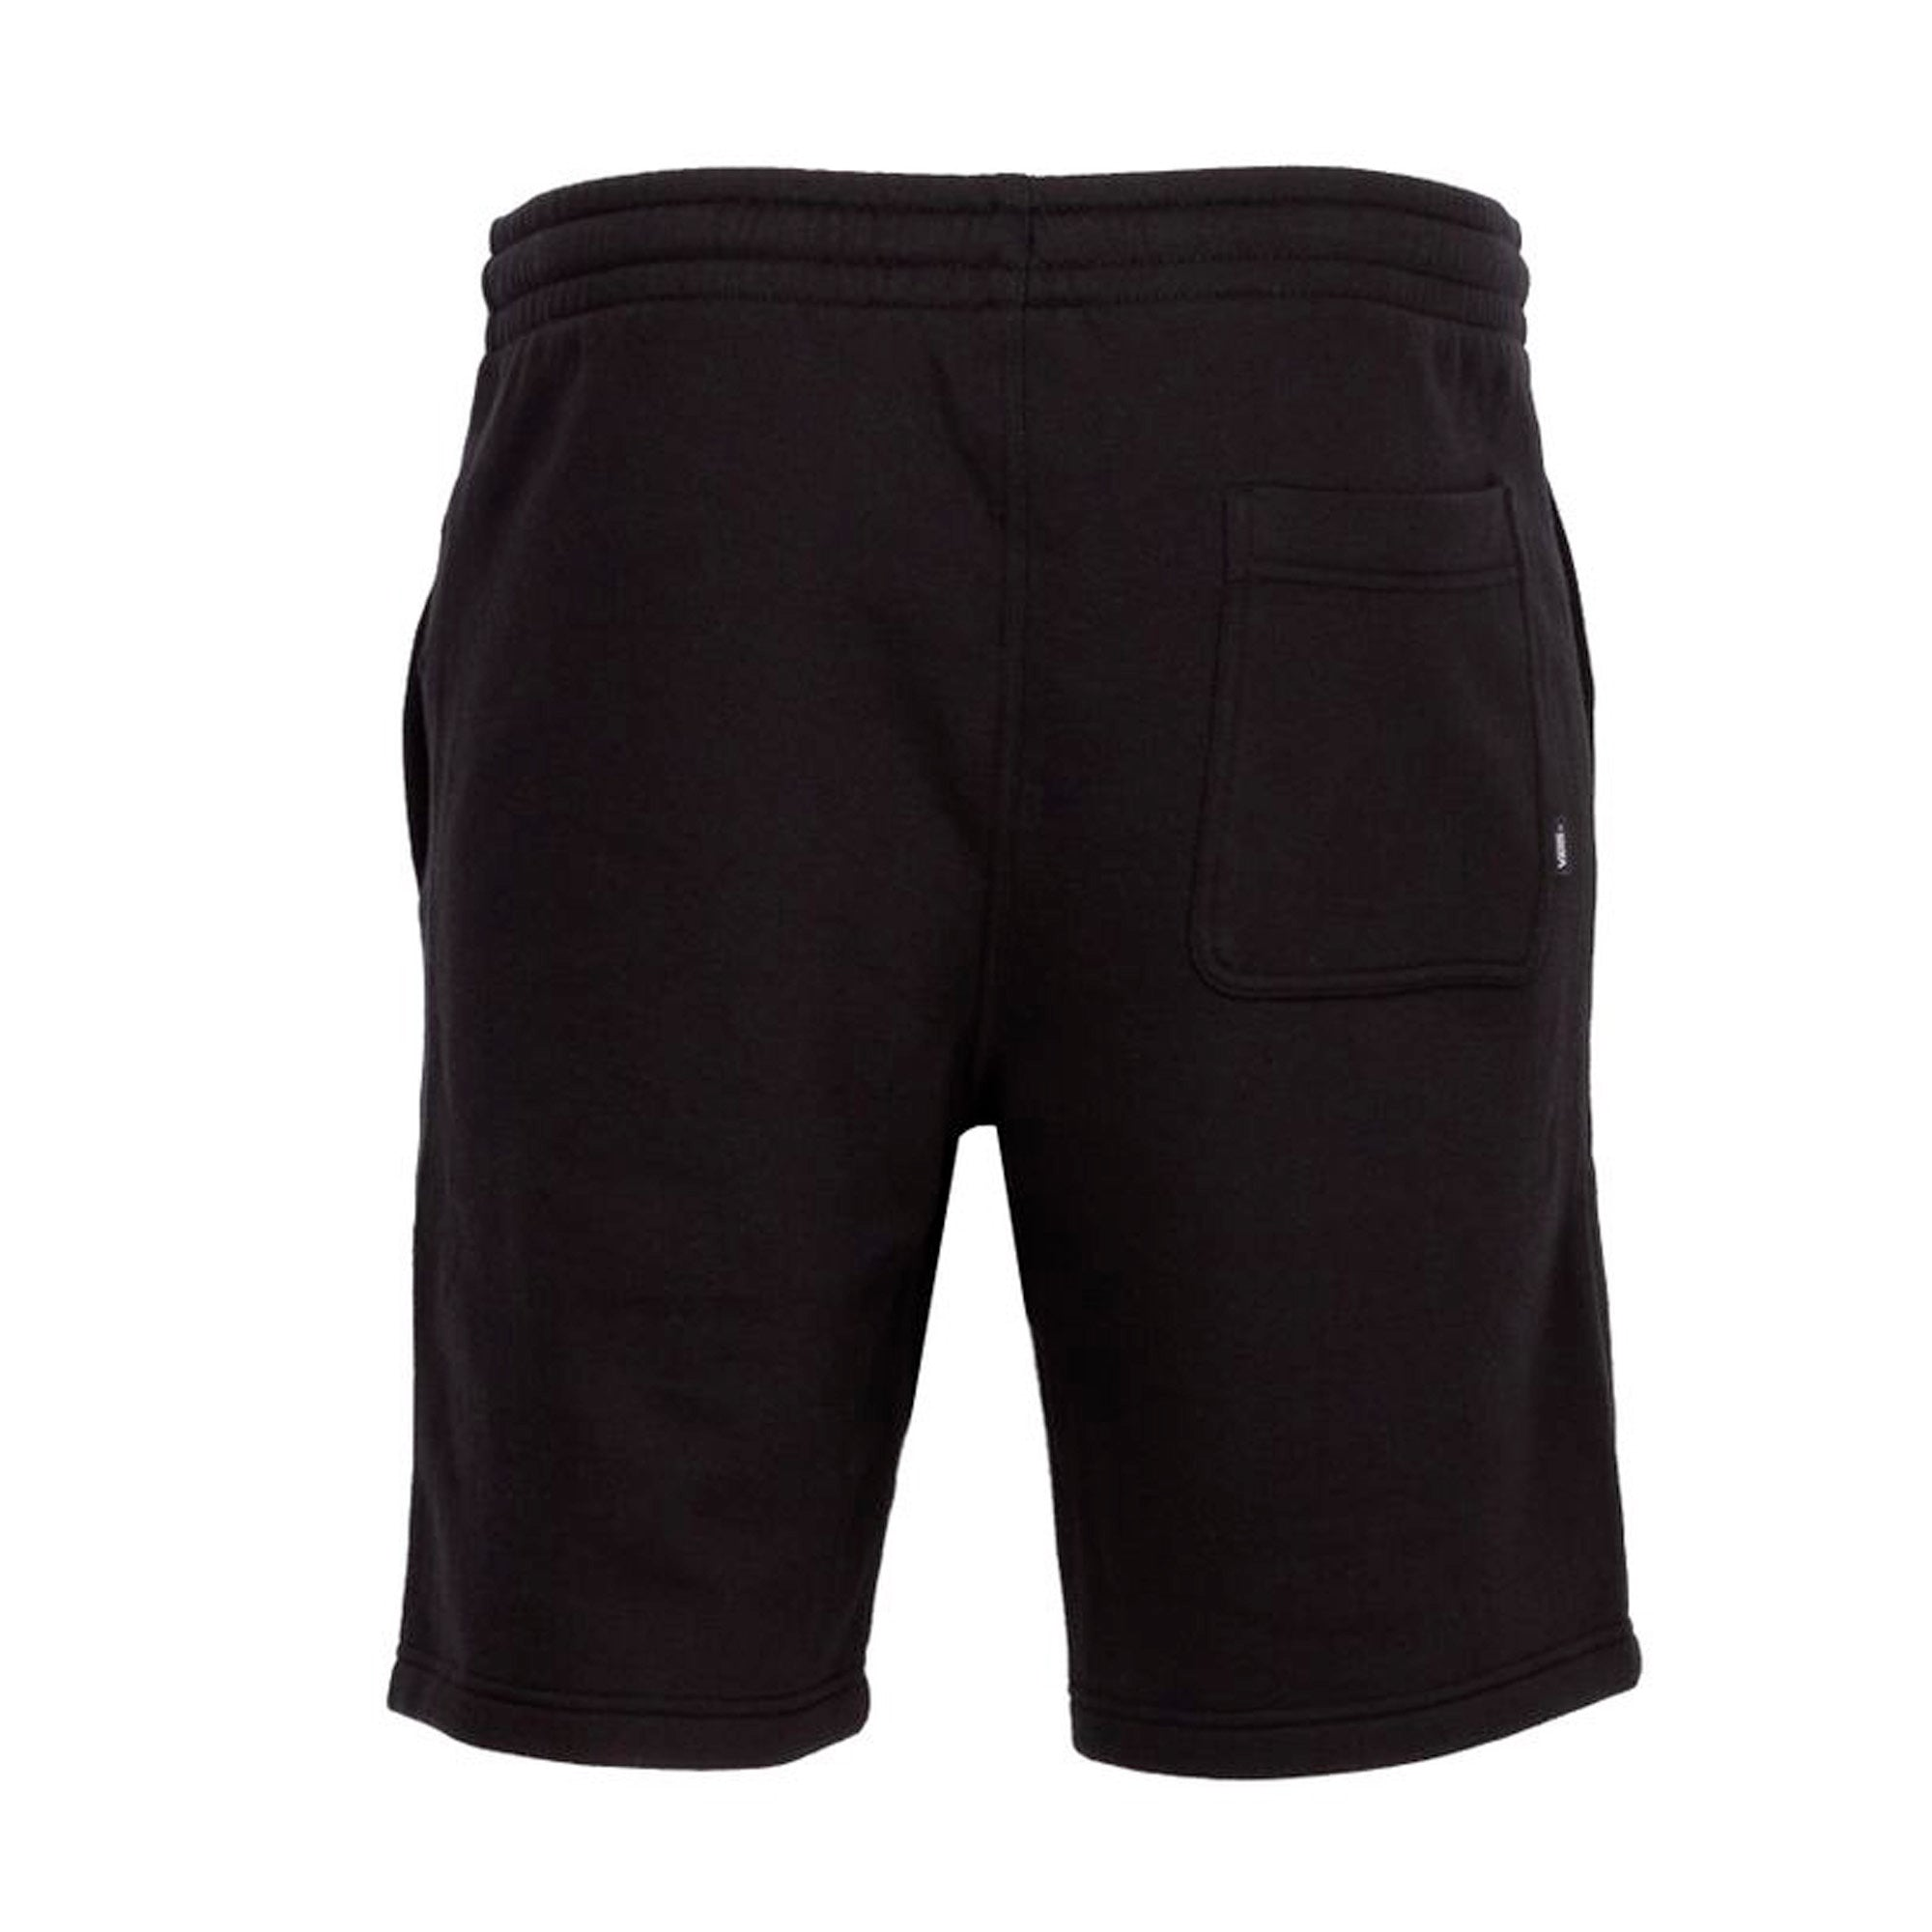 Vans Dimension Men's Fleece Shorts